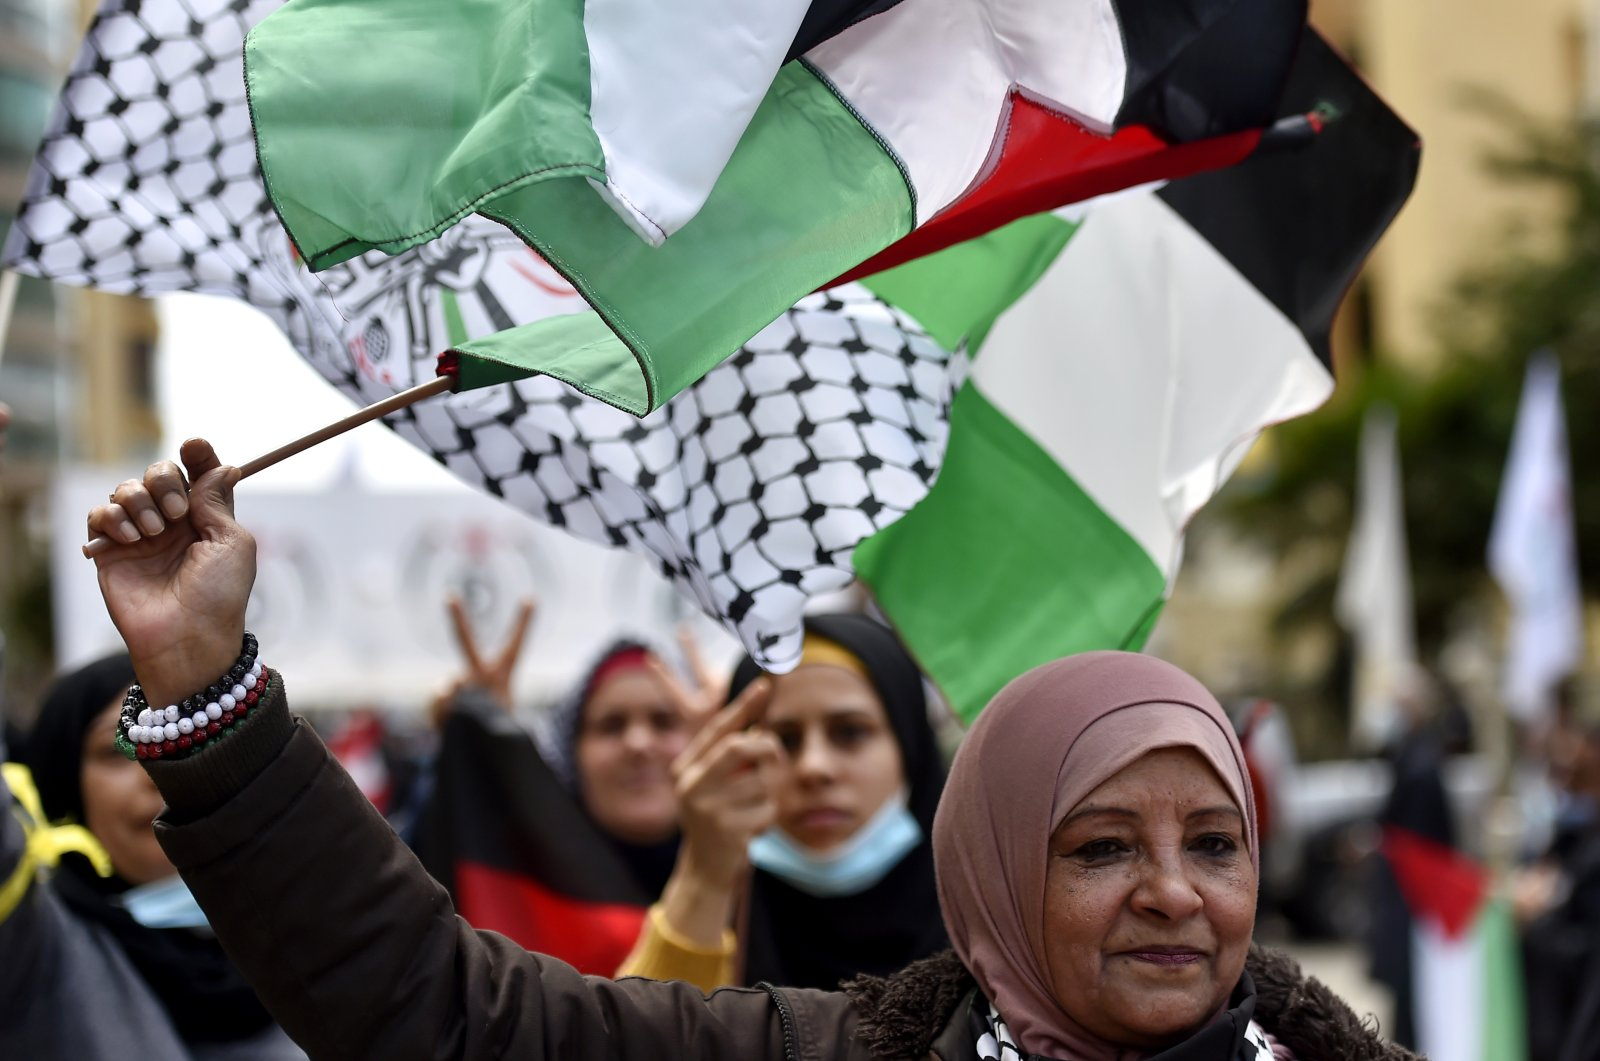 Palestinian refugees carry national flags as they shout slogans during a protest outside of the Palestinian Embassy in Beirut, Lebanon, 12 April 2021. (EPA Photo)